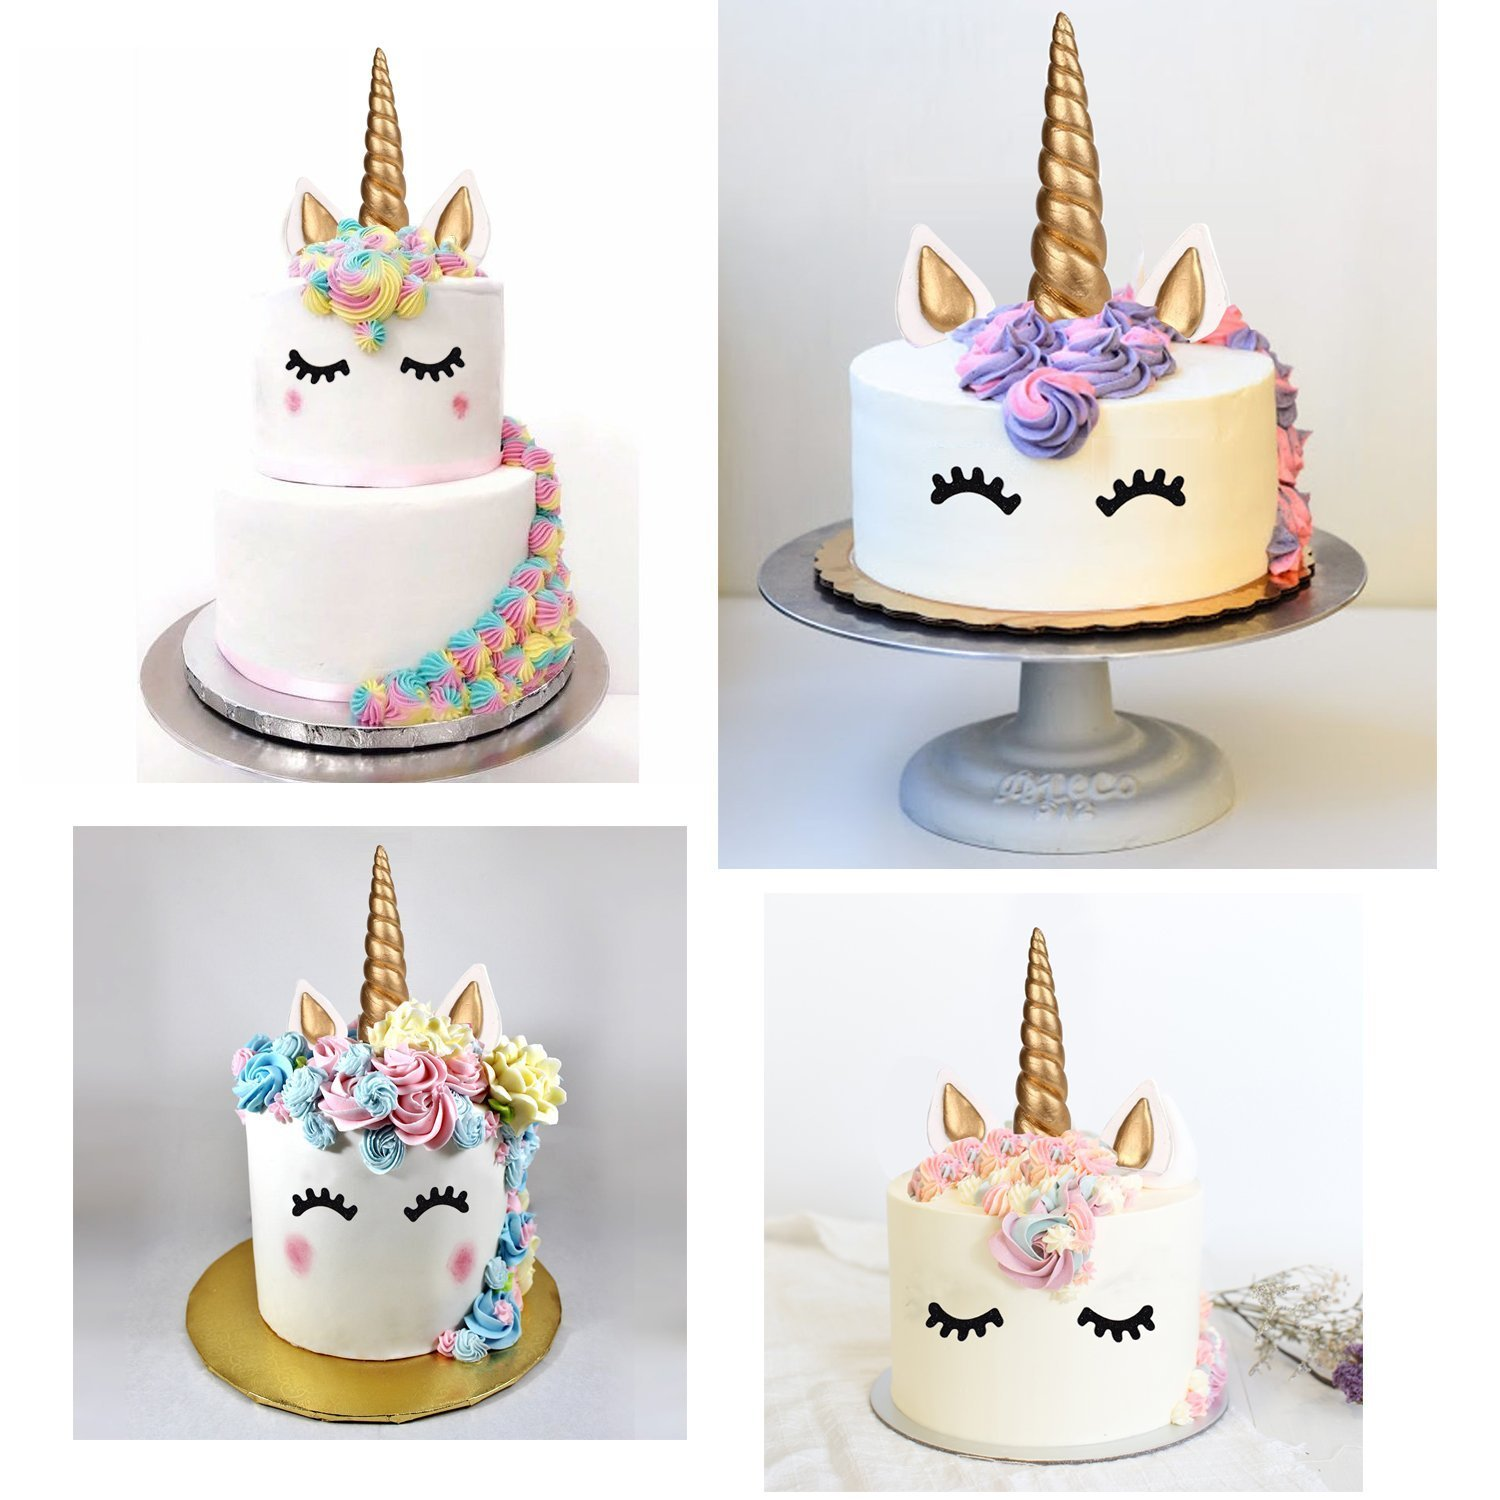 Large Unicorn Cake Toppers Unicorn Horn Ears With Eyelashes Cake Topper Set for 8 10 Unicorn Cake Decoration